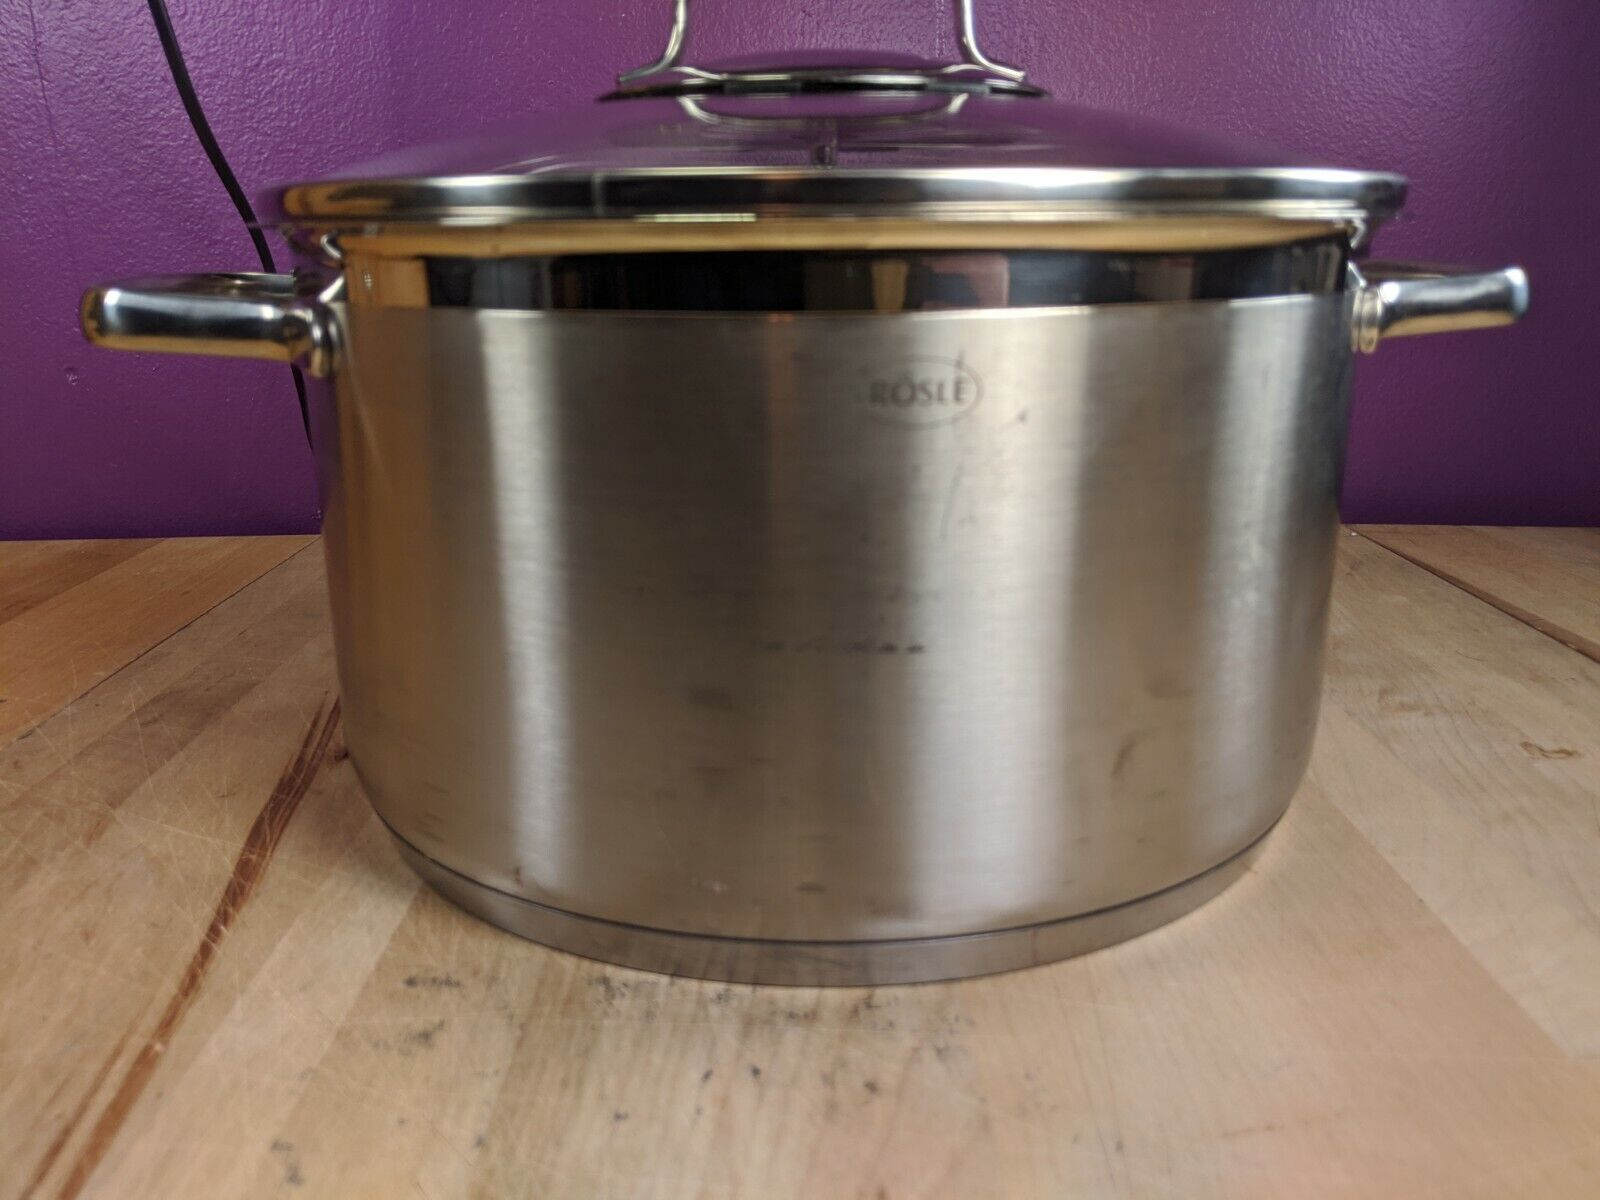 R SLE Pot Stainless Steel 18/10 5 Liter Pot Boiling Pot With Lid - $39.95